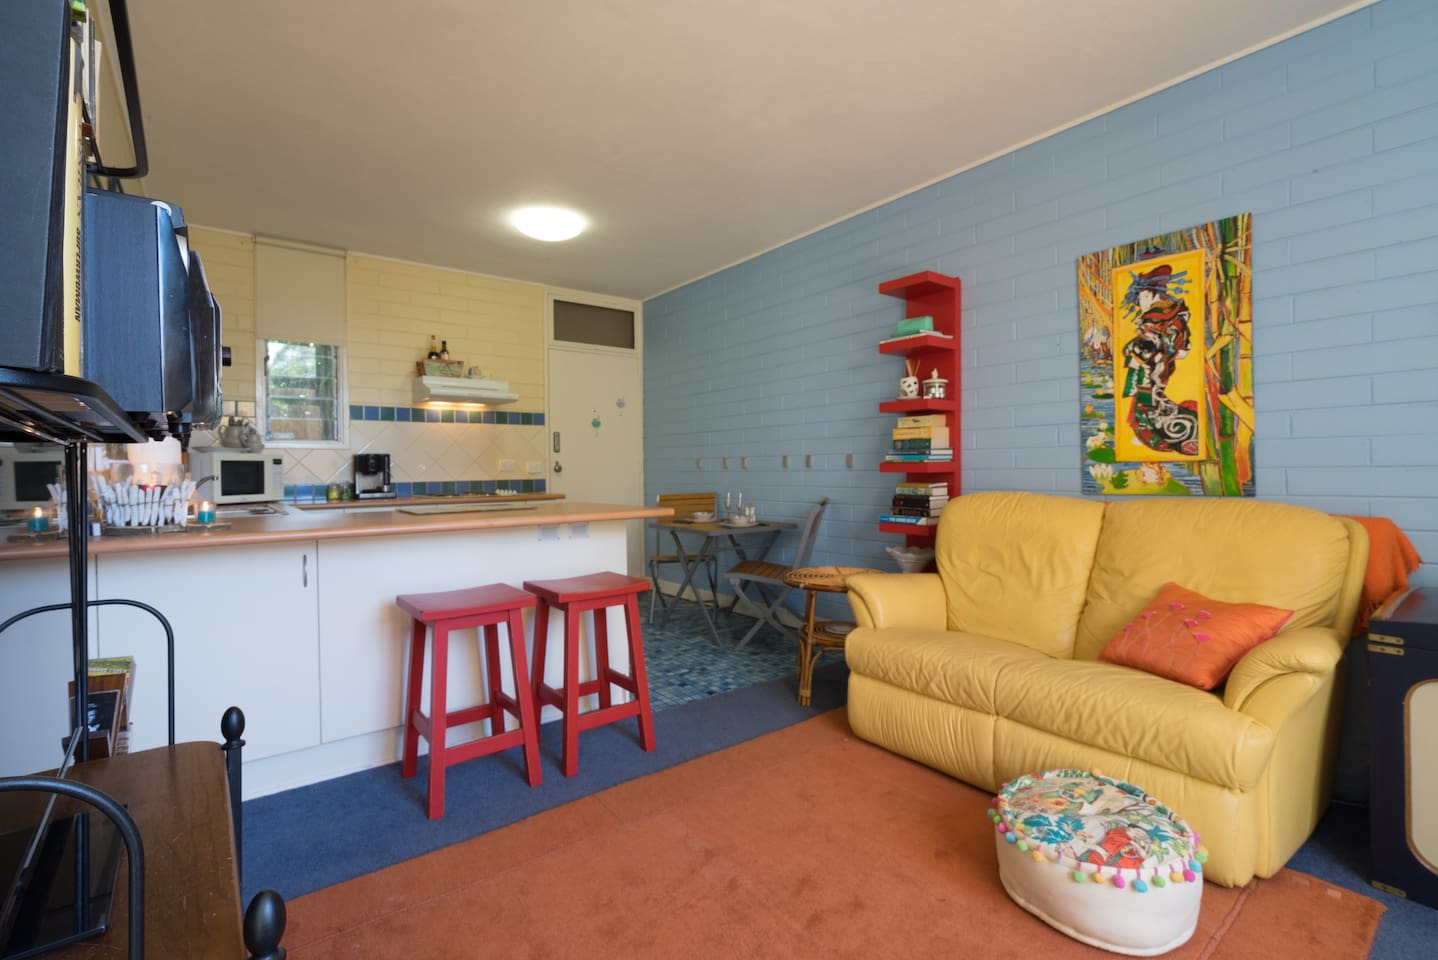 Self contained. Cosy, bright and colourful. Come in, relax and enjoy